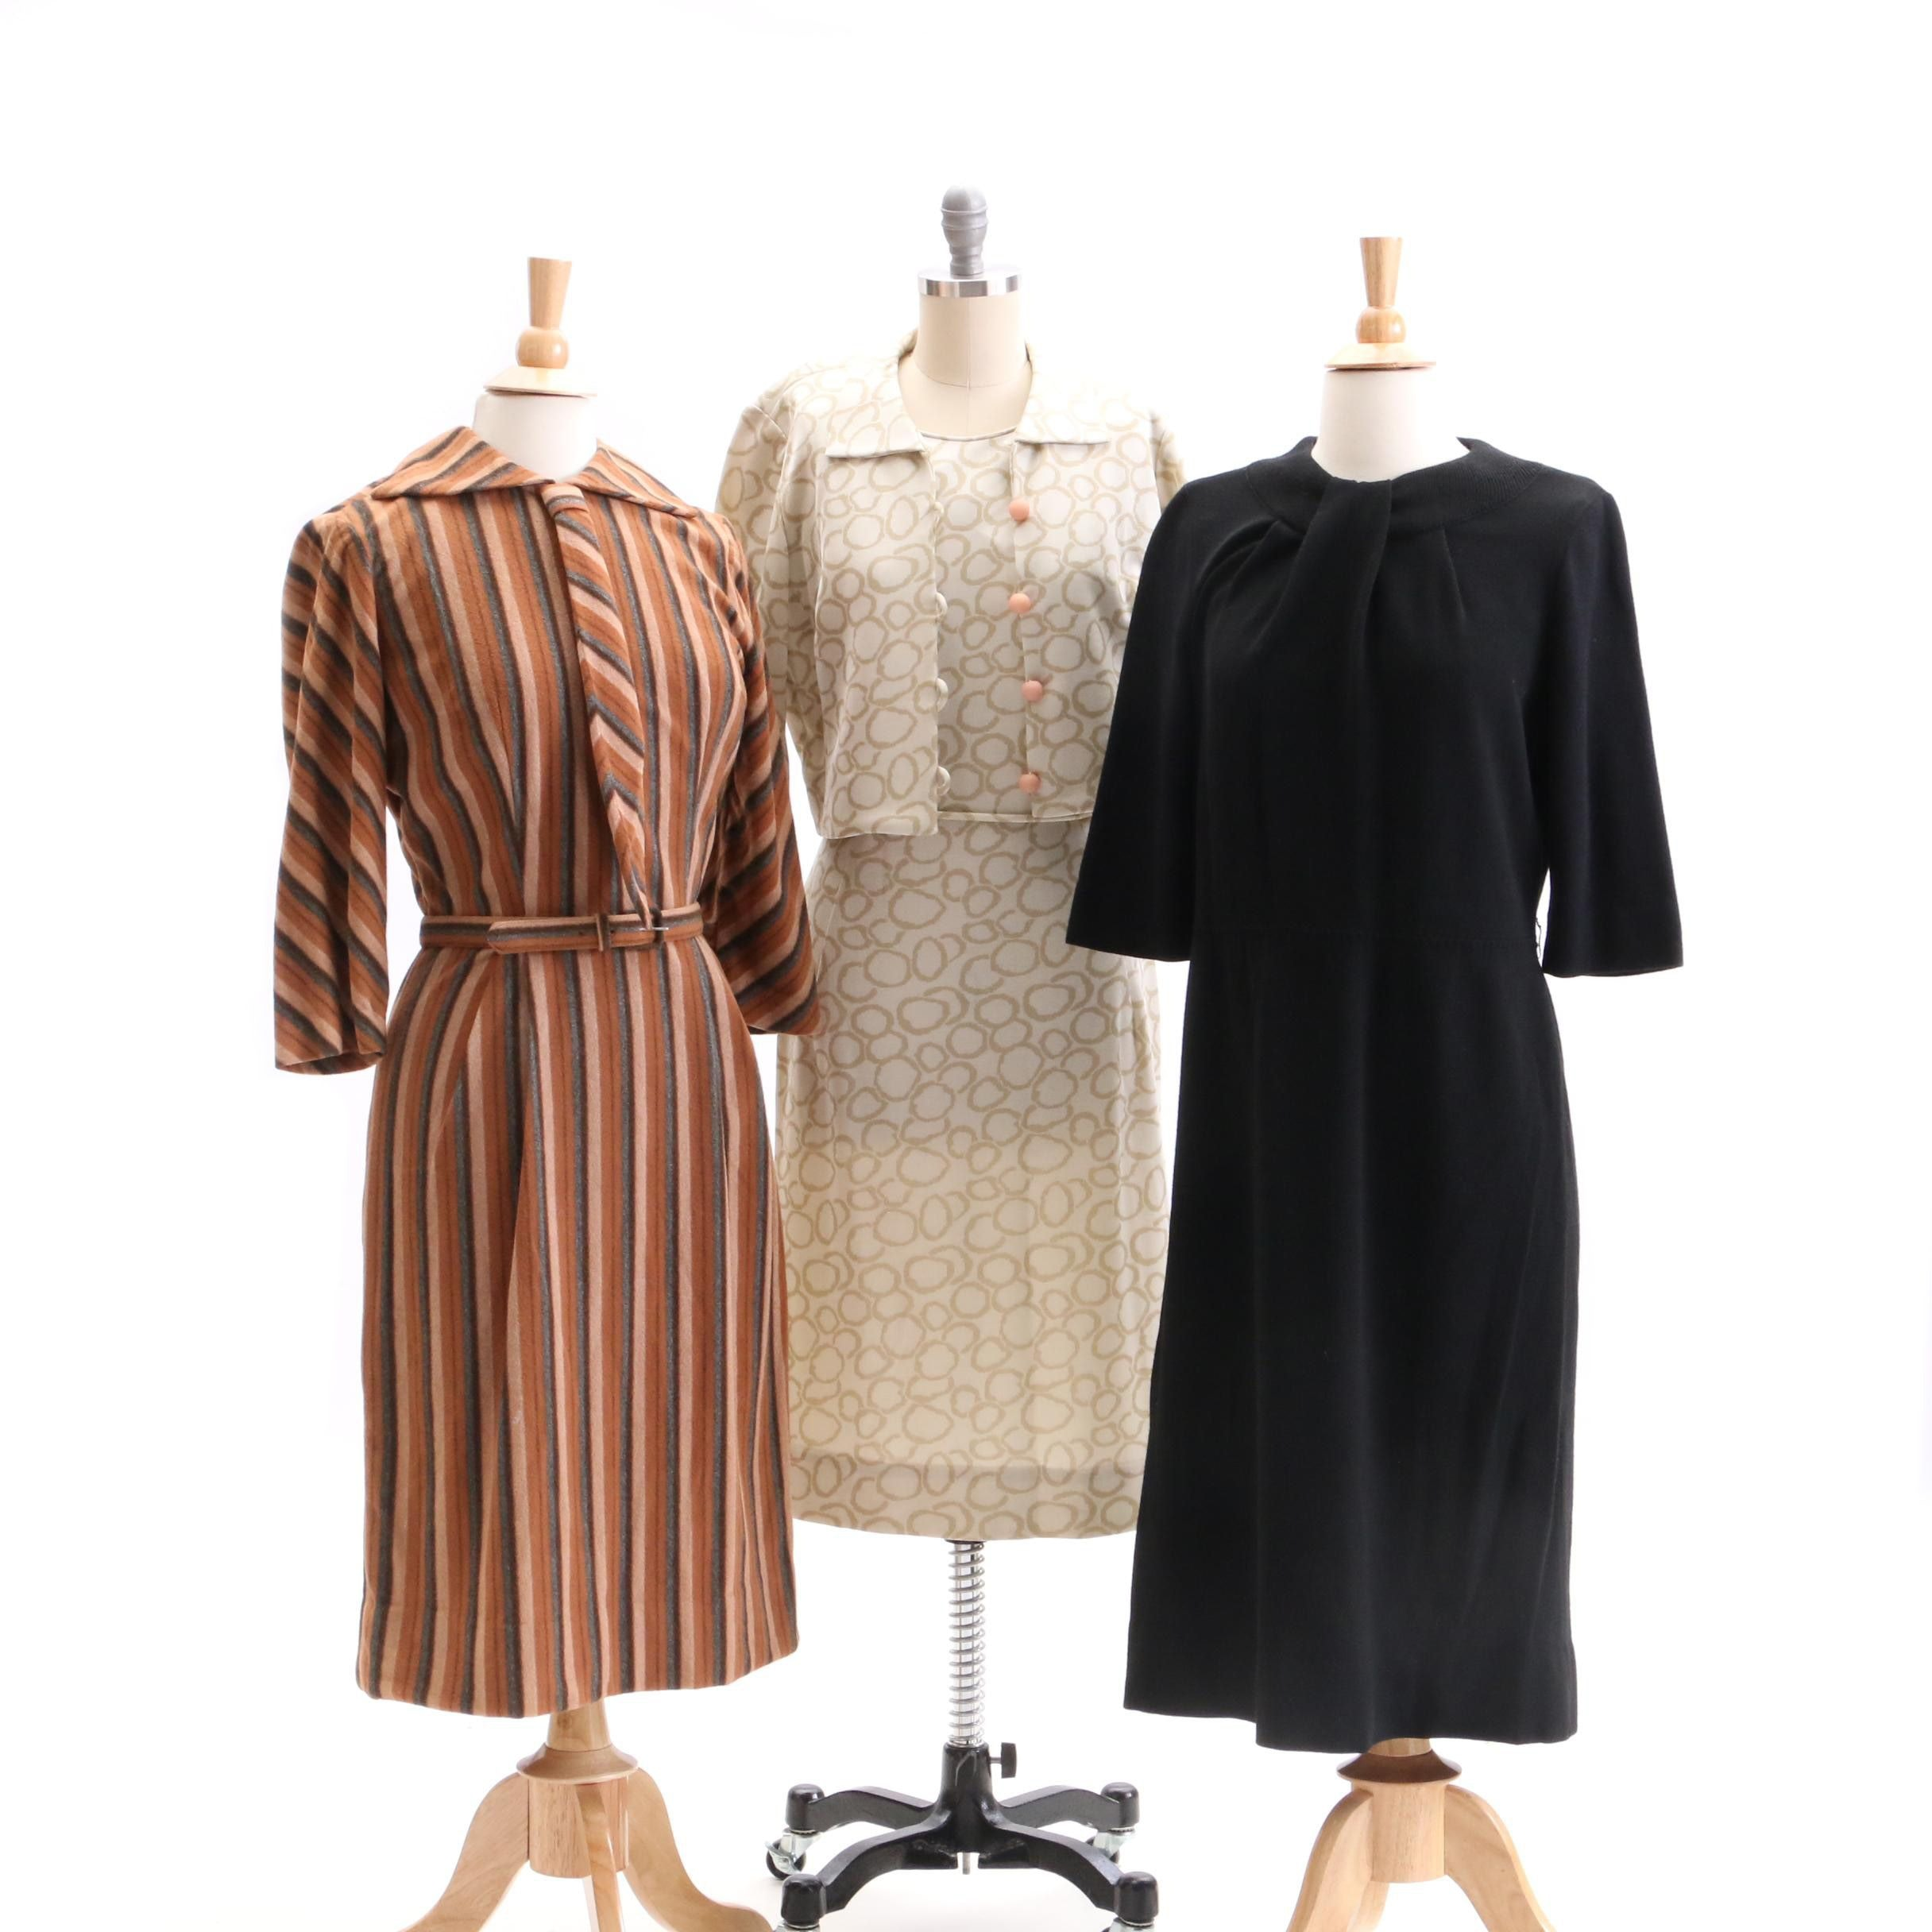 Circa 1960s Vintage Miss Peg Palmer Dress and Others